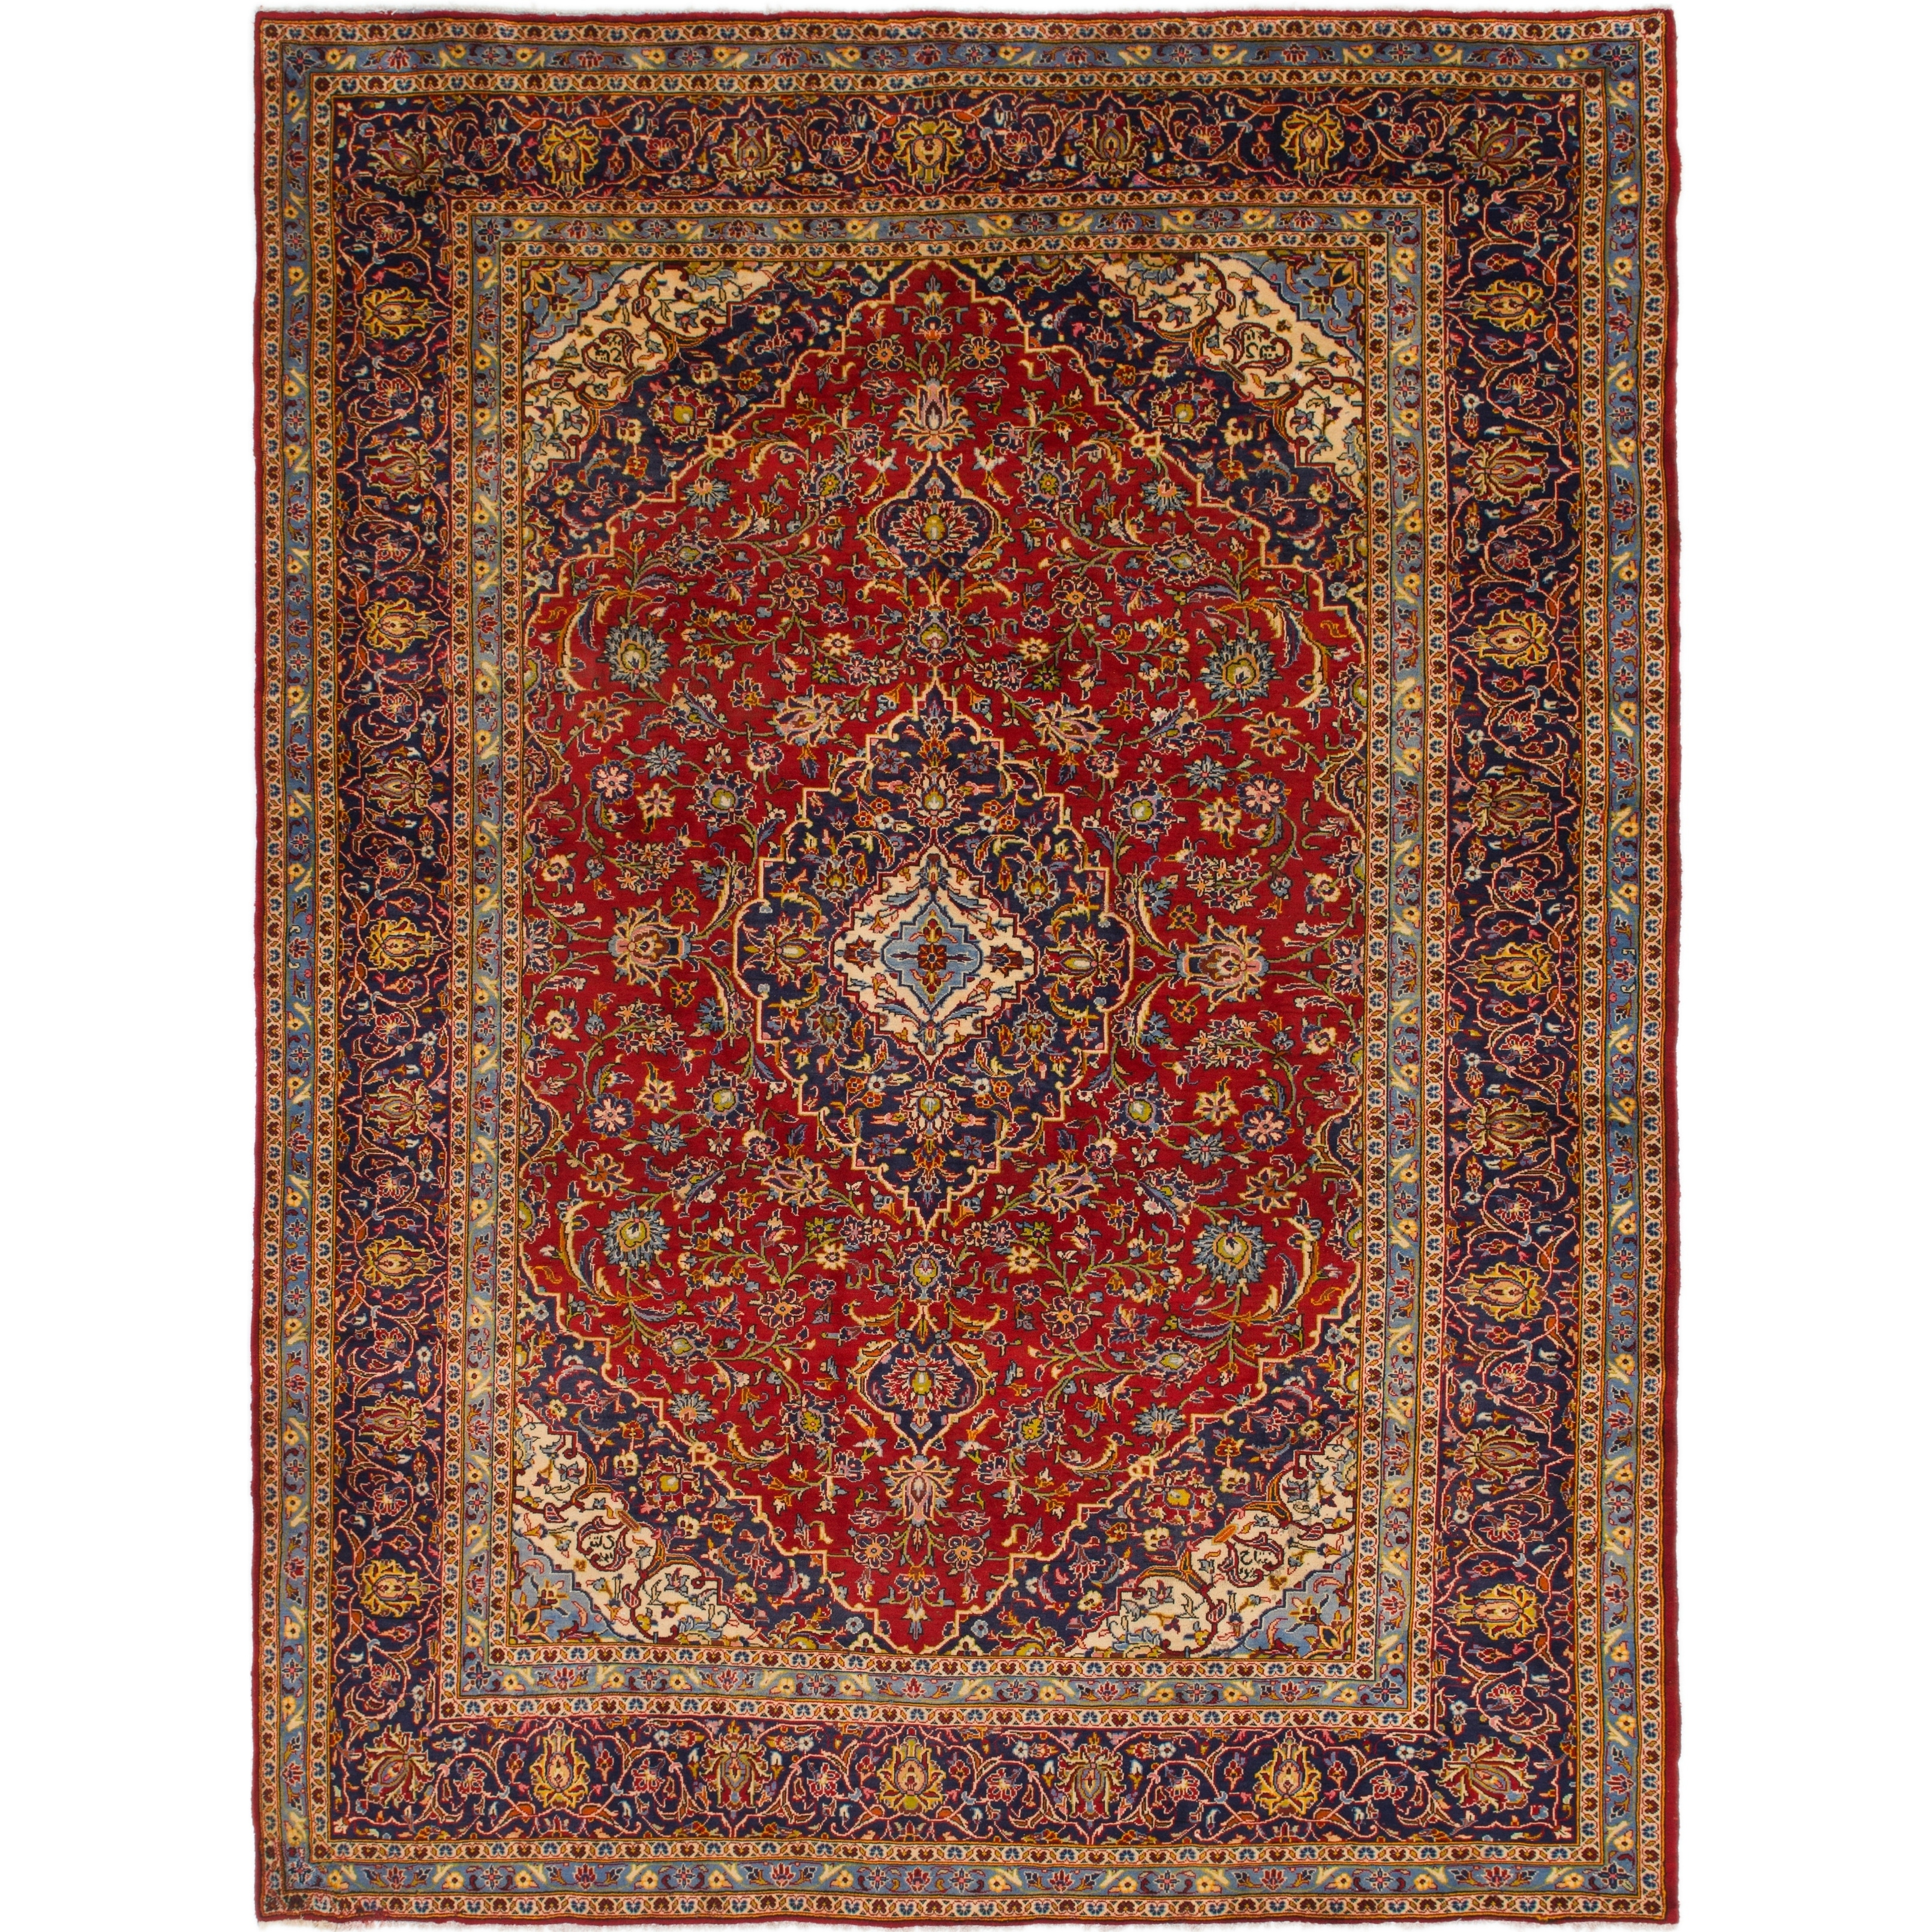 Hand Knotted Kashan Semi Antique Wool Area Rug - 9 7 x 12 10 (Red - 9 7 x 12 10)